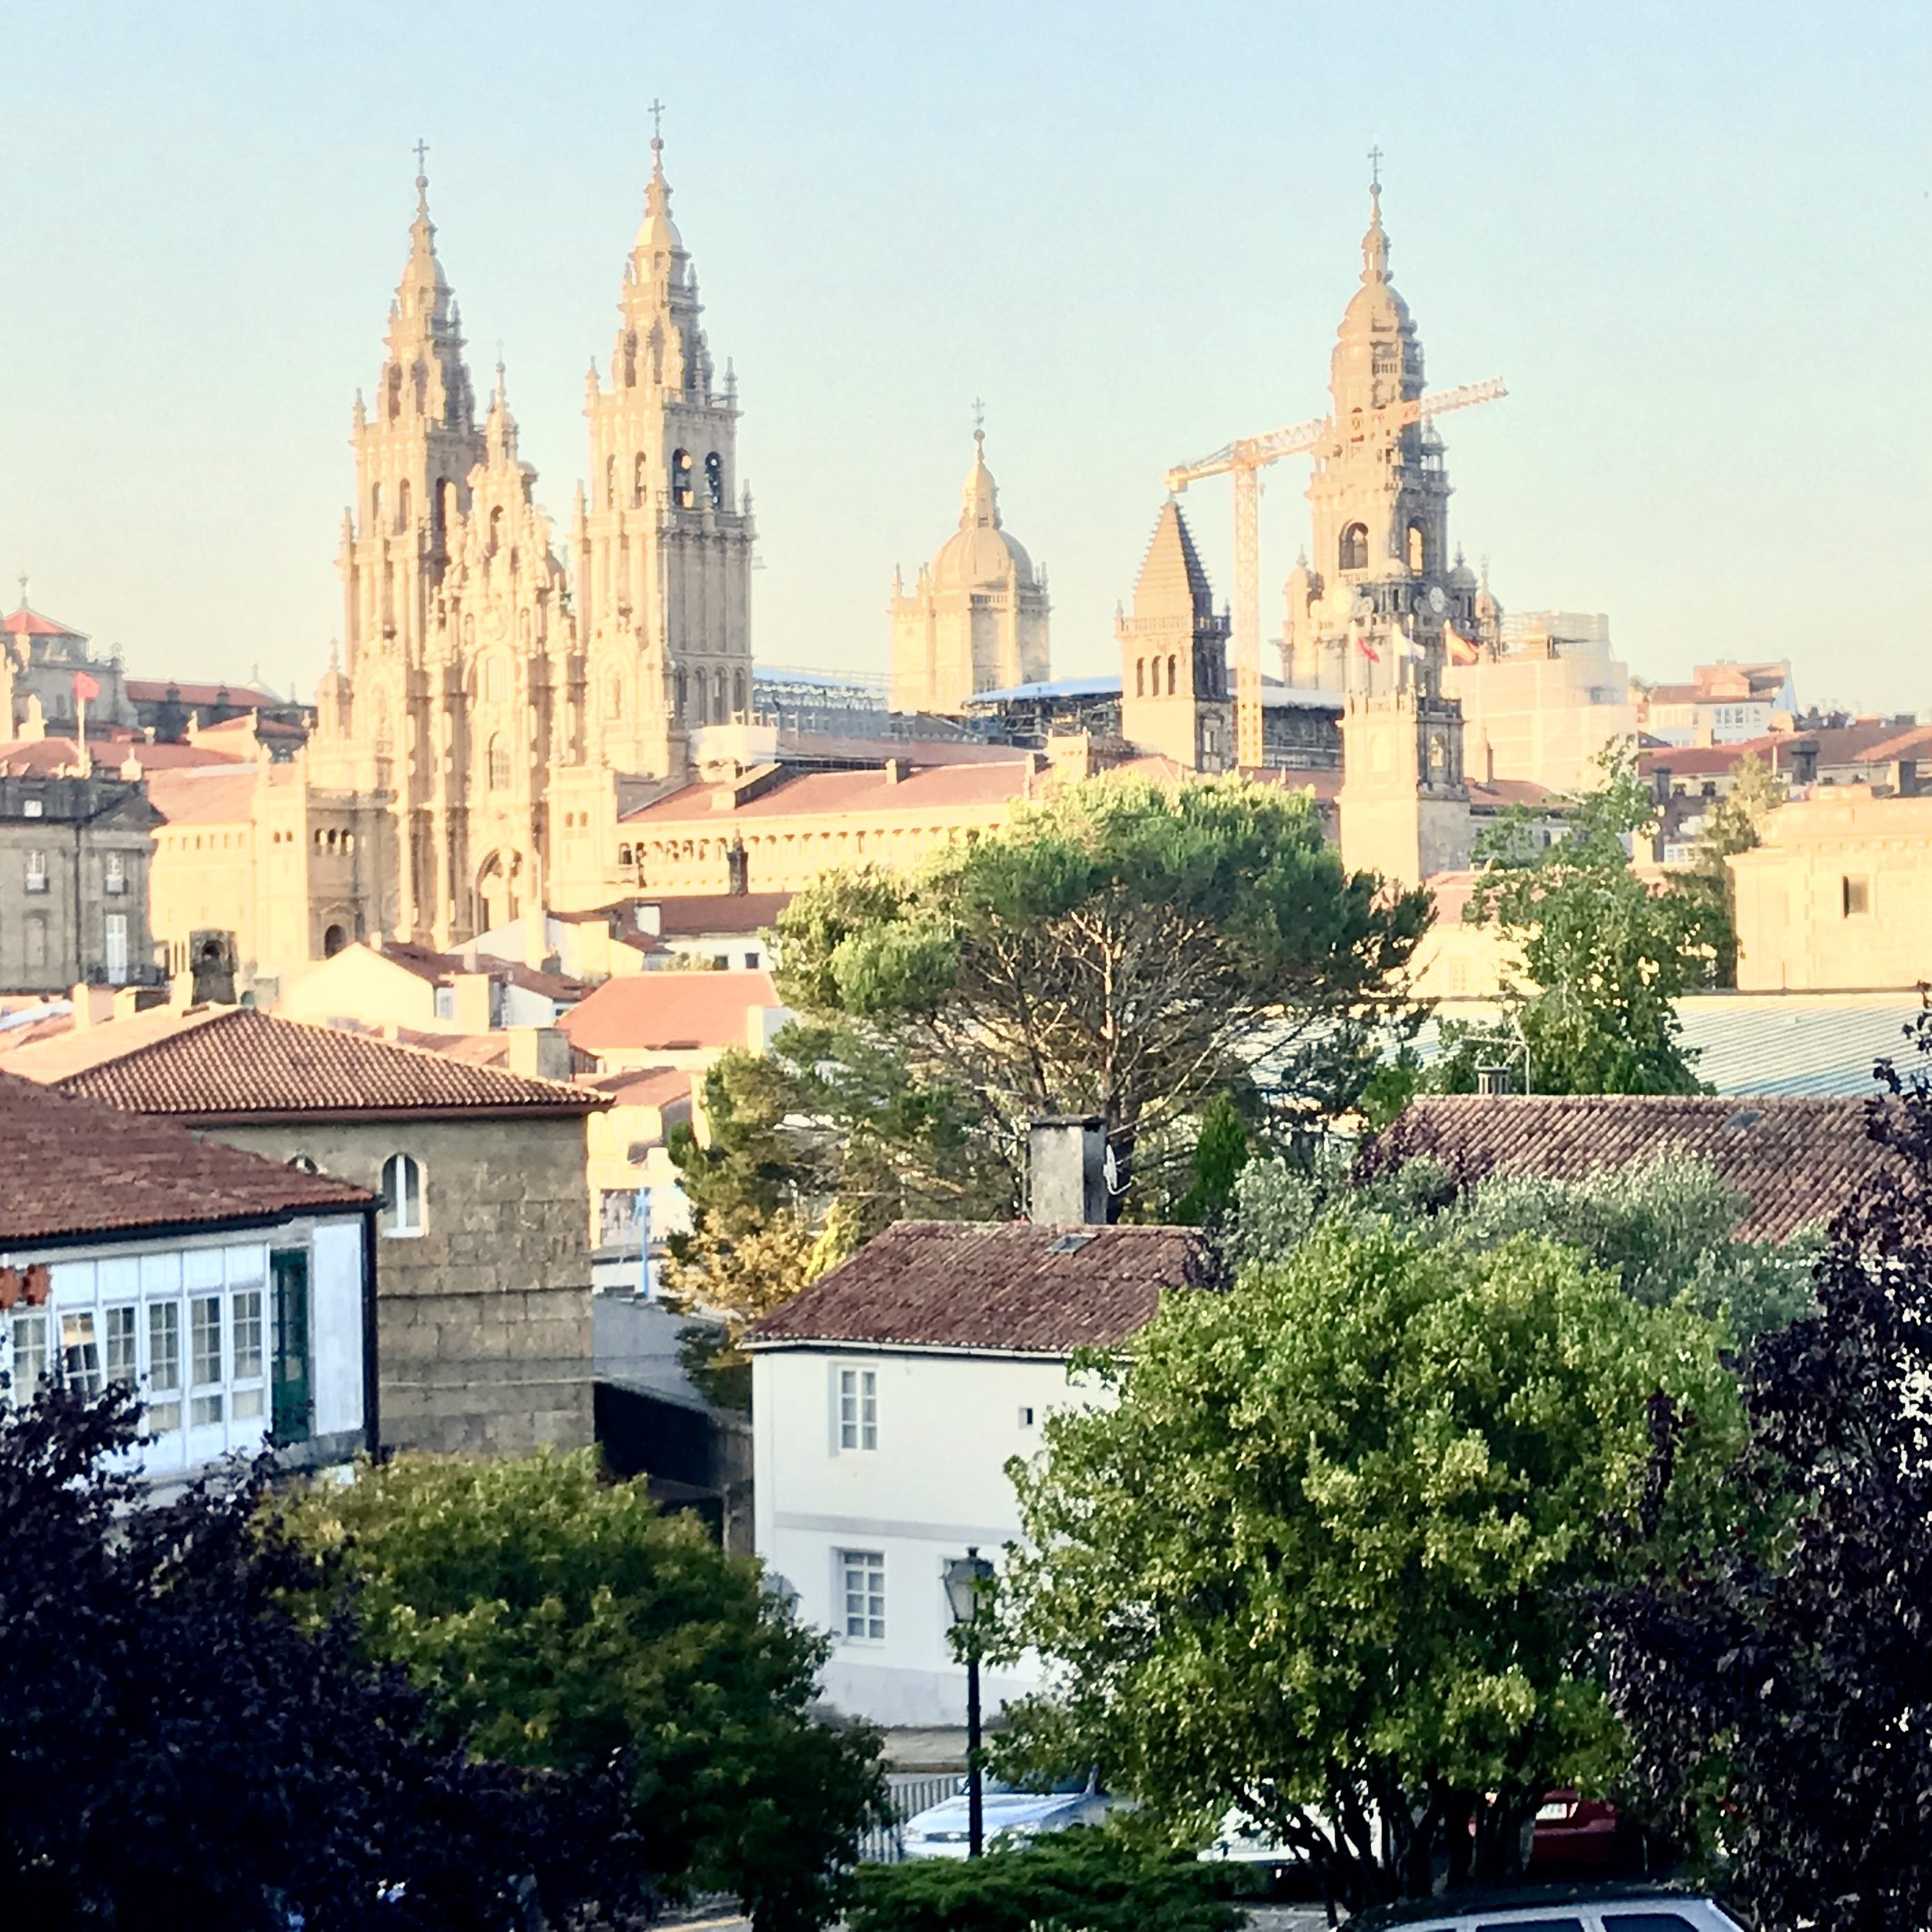 View of the famous, golden cathedral from the park where week-long festivities were taking place in Santiago de Compostela.